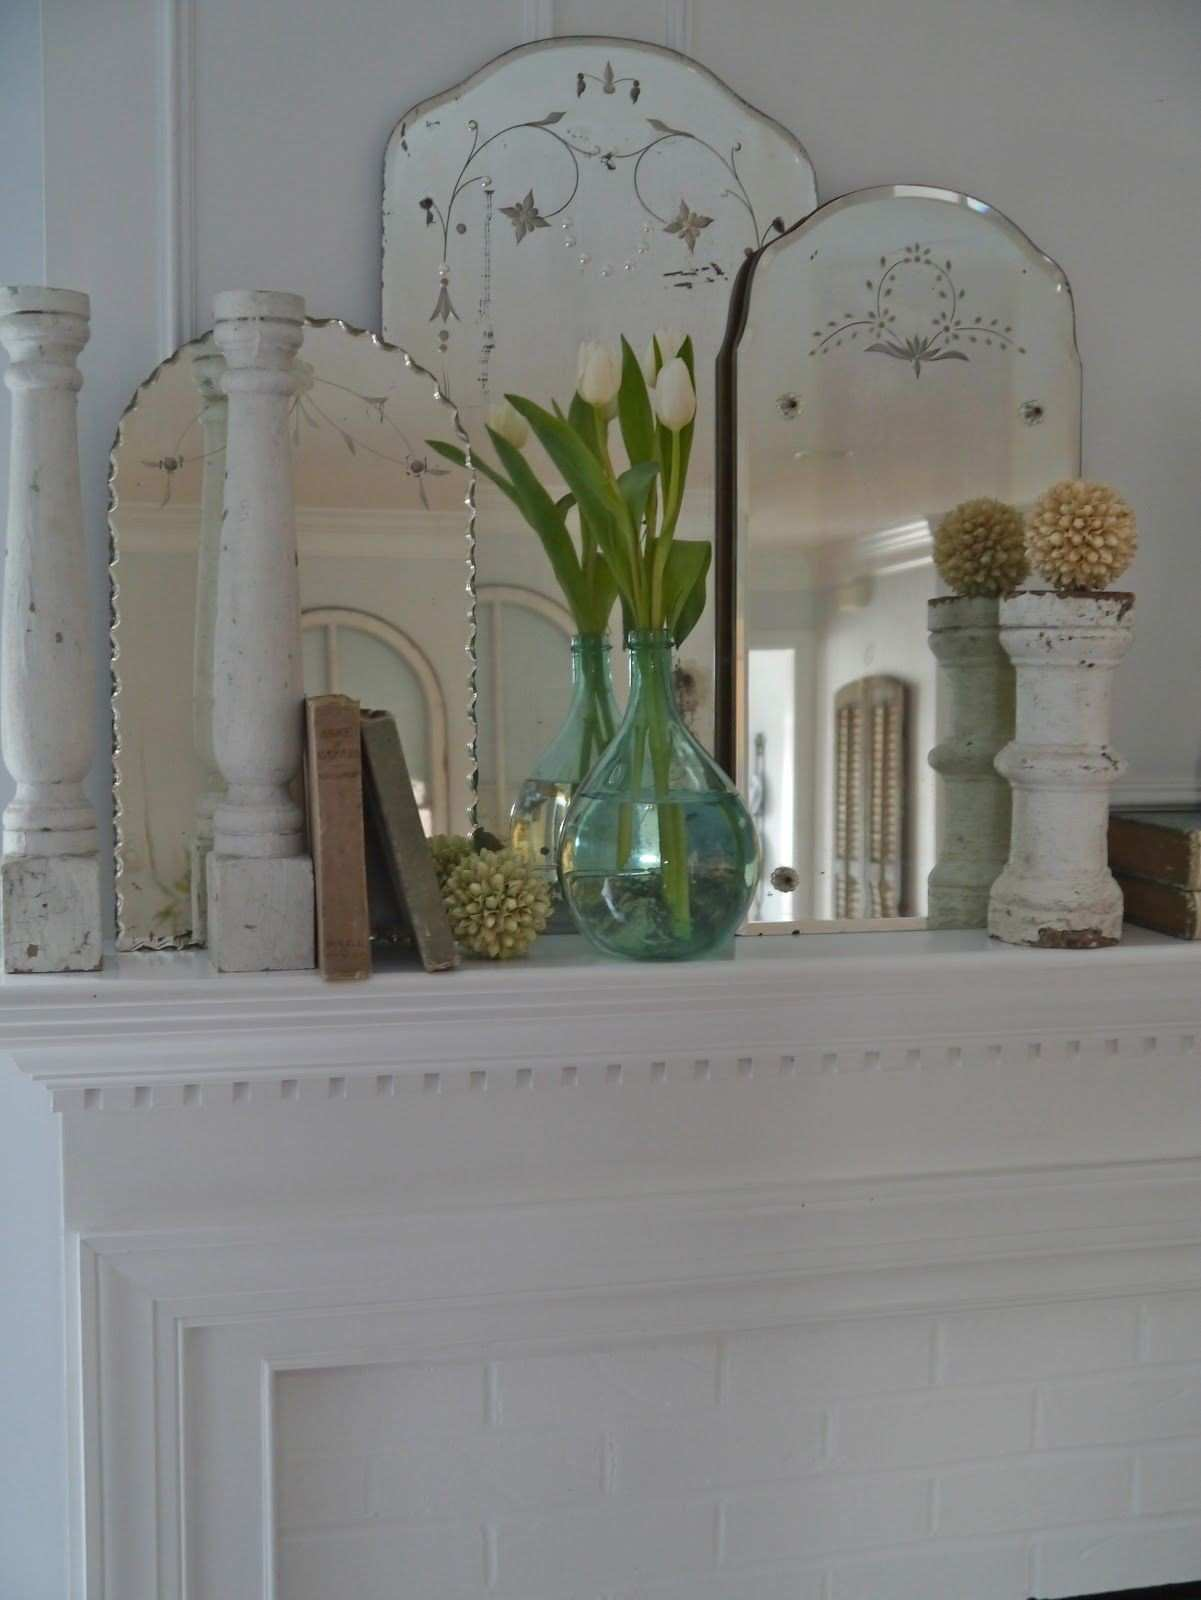 Etched Vintage Mirrors Look Great Grouped to Her Design Art Deco